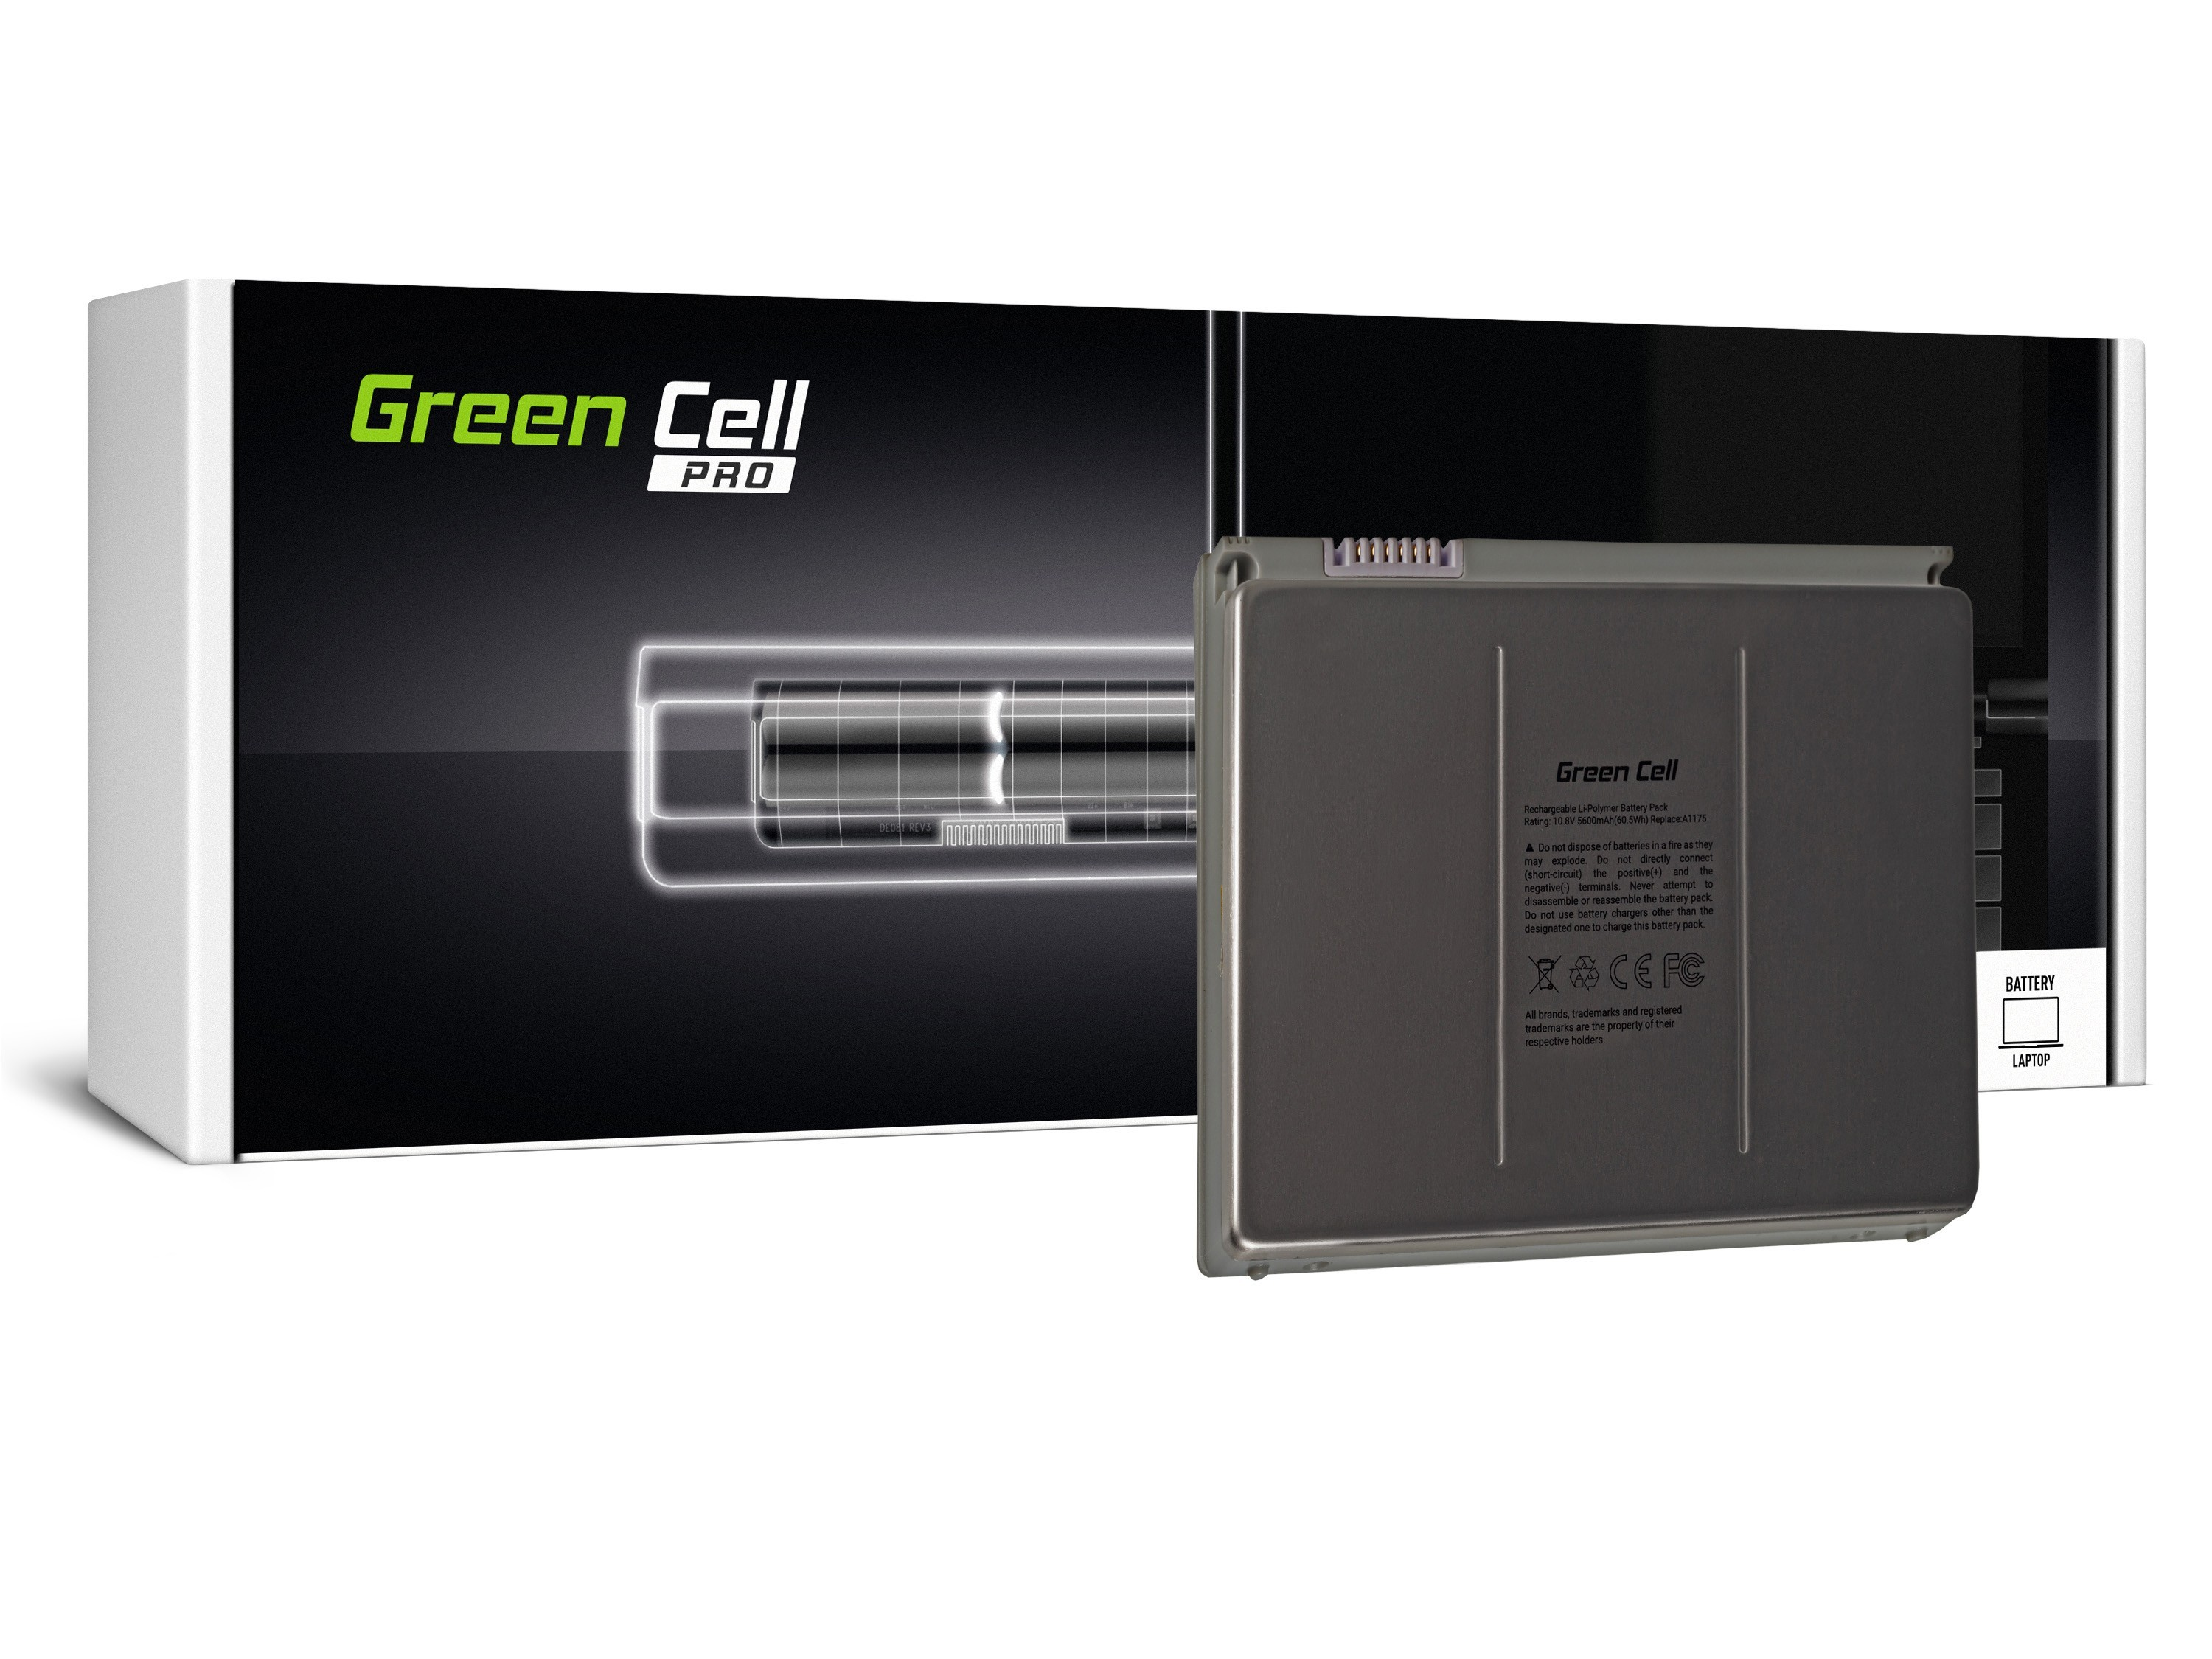 newest 07490 5c7f6 Green Cell PRO Battery for Apple Macbook Pro 15 A1150 A1211 A1226 ...